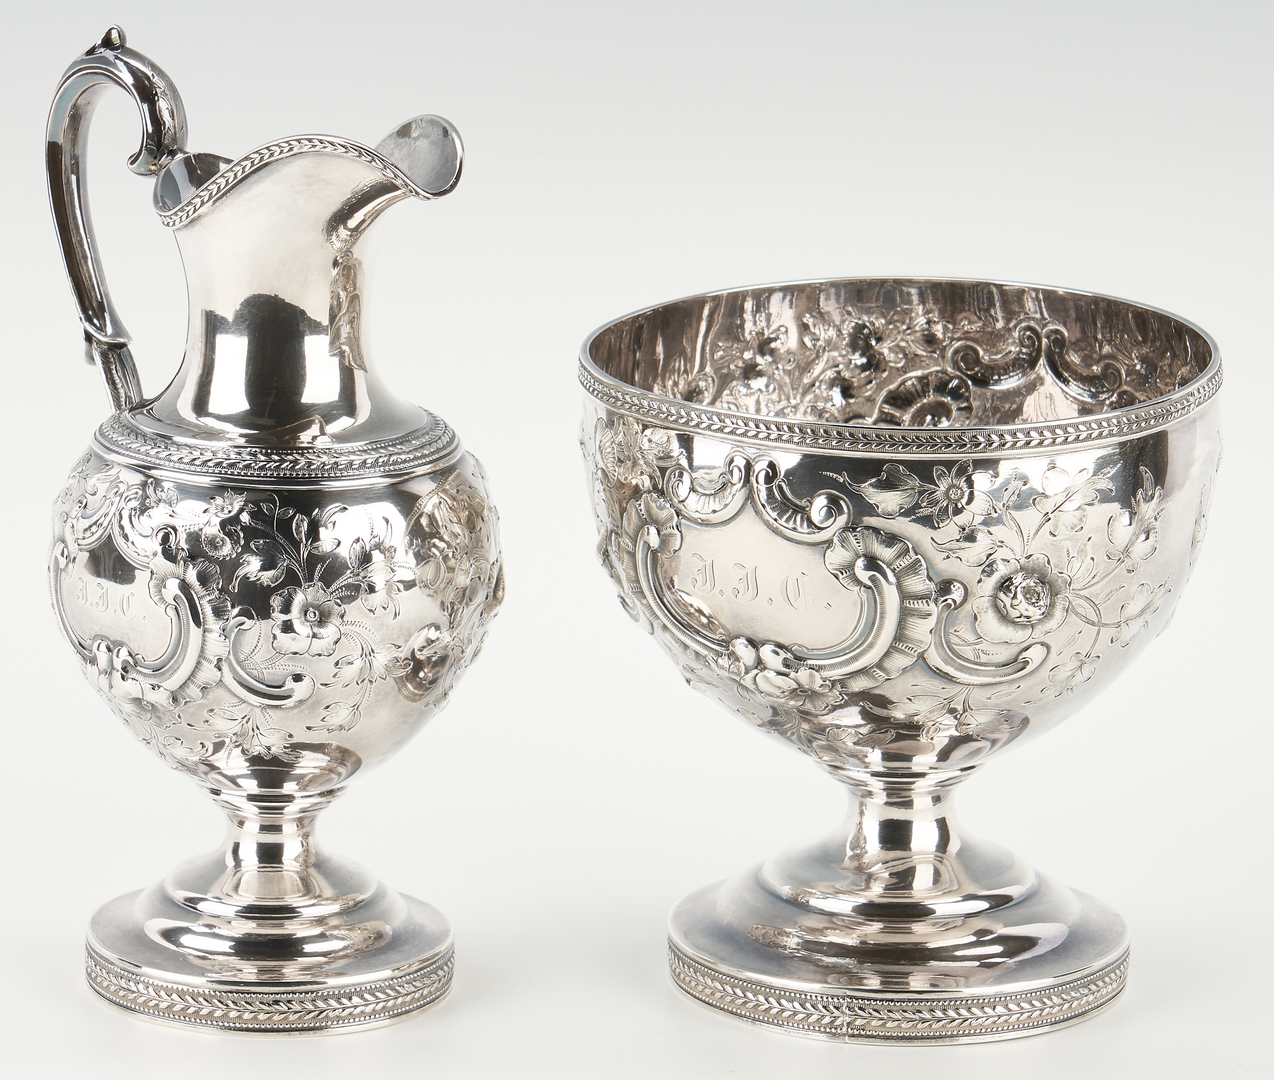 Lot 108: American Repousse Coin Silver Tea Service, NY